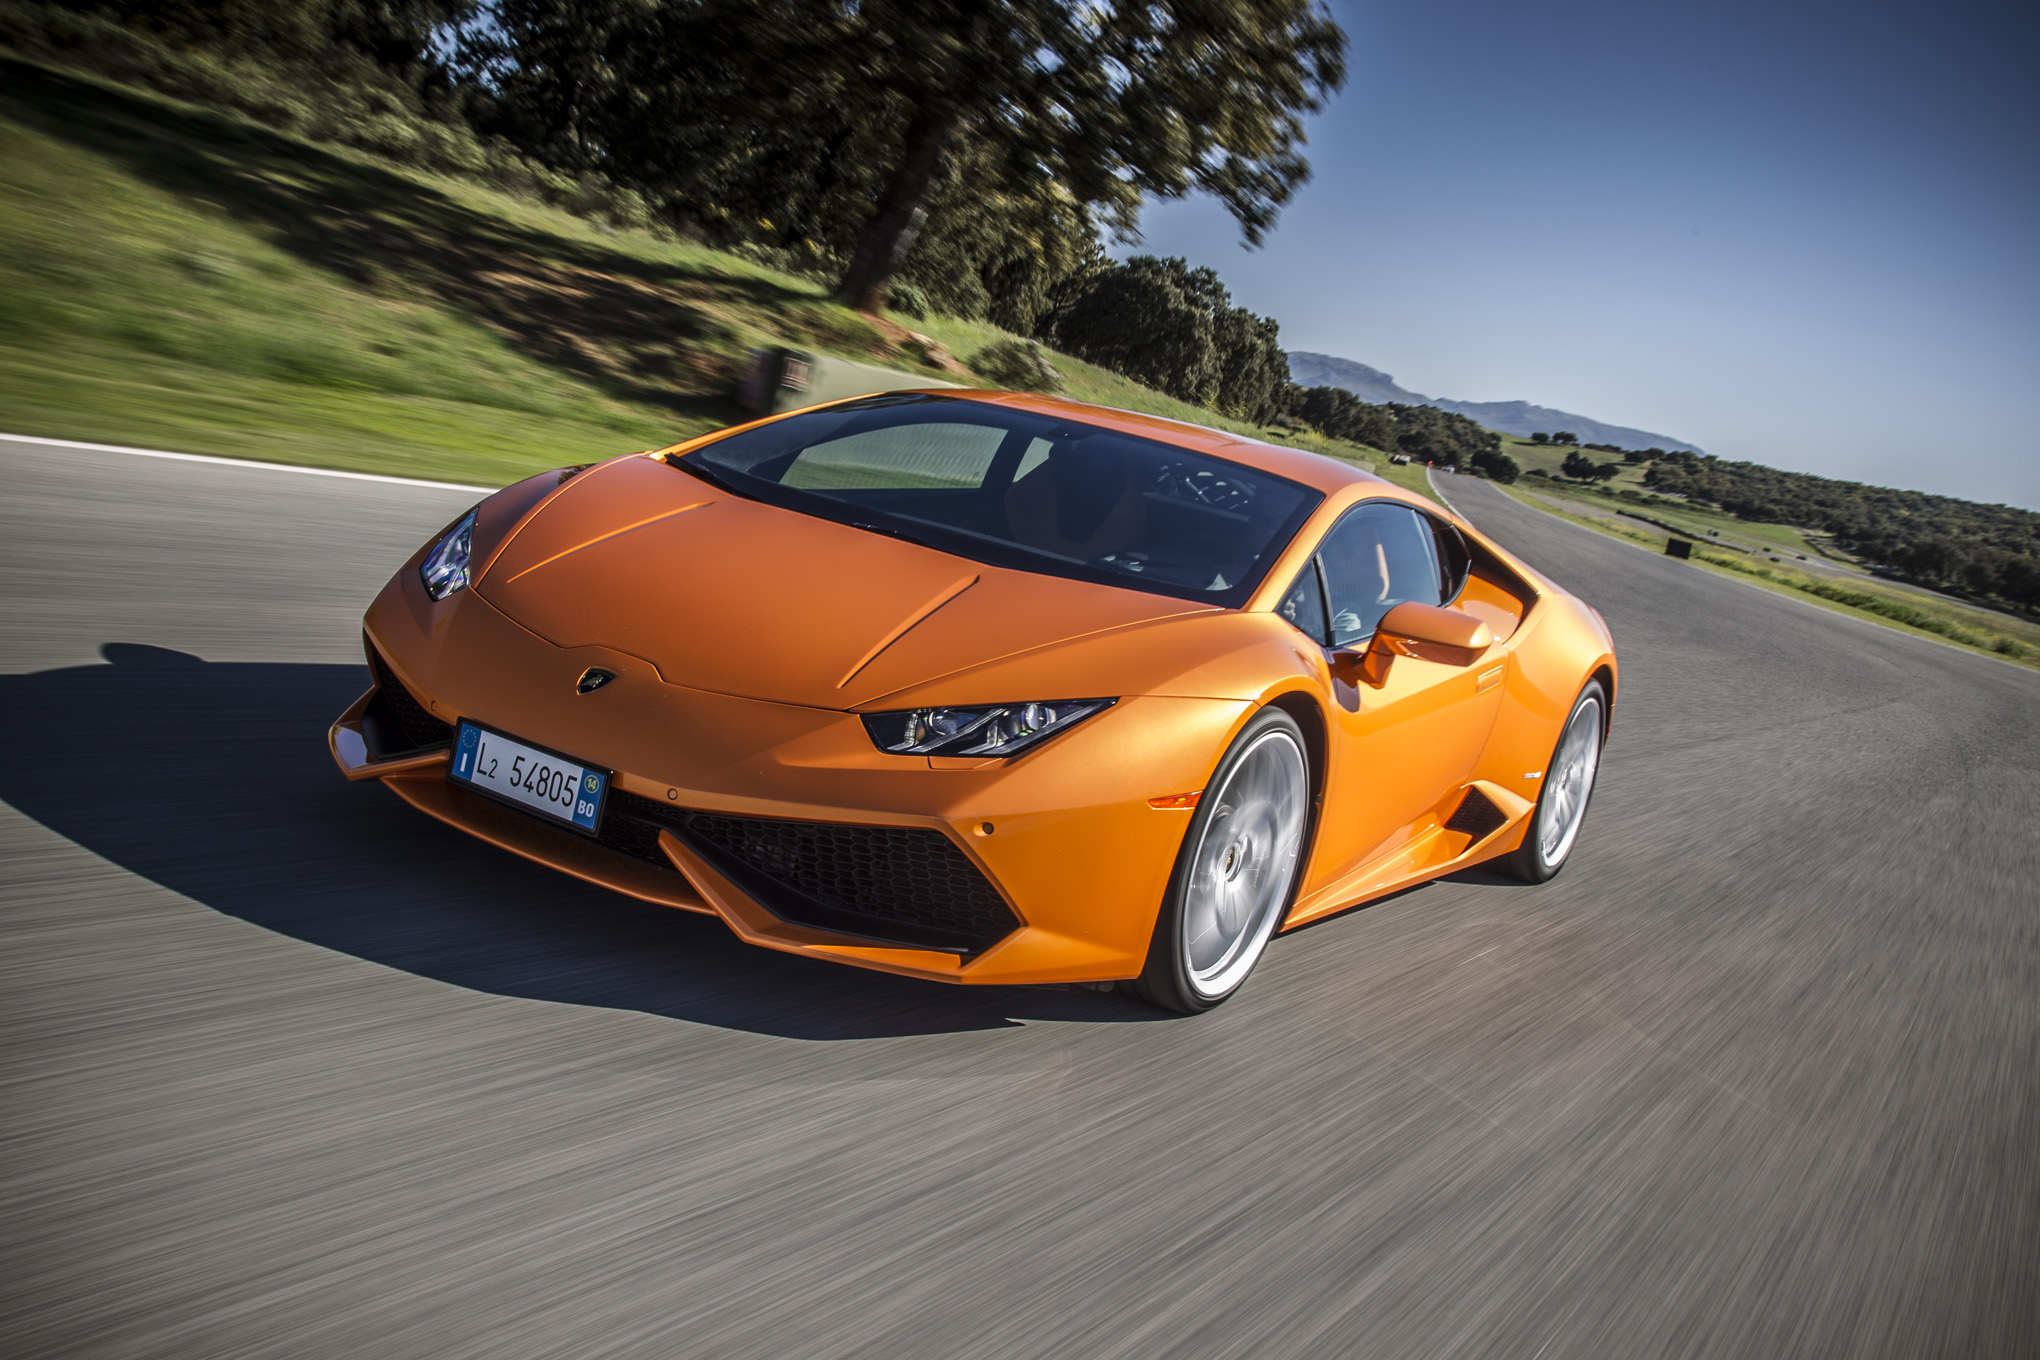 New Modifications For The 2016 Lamborghini Huracan 2